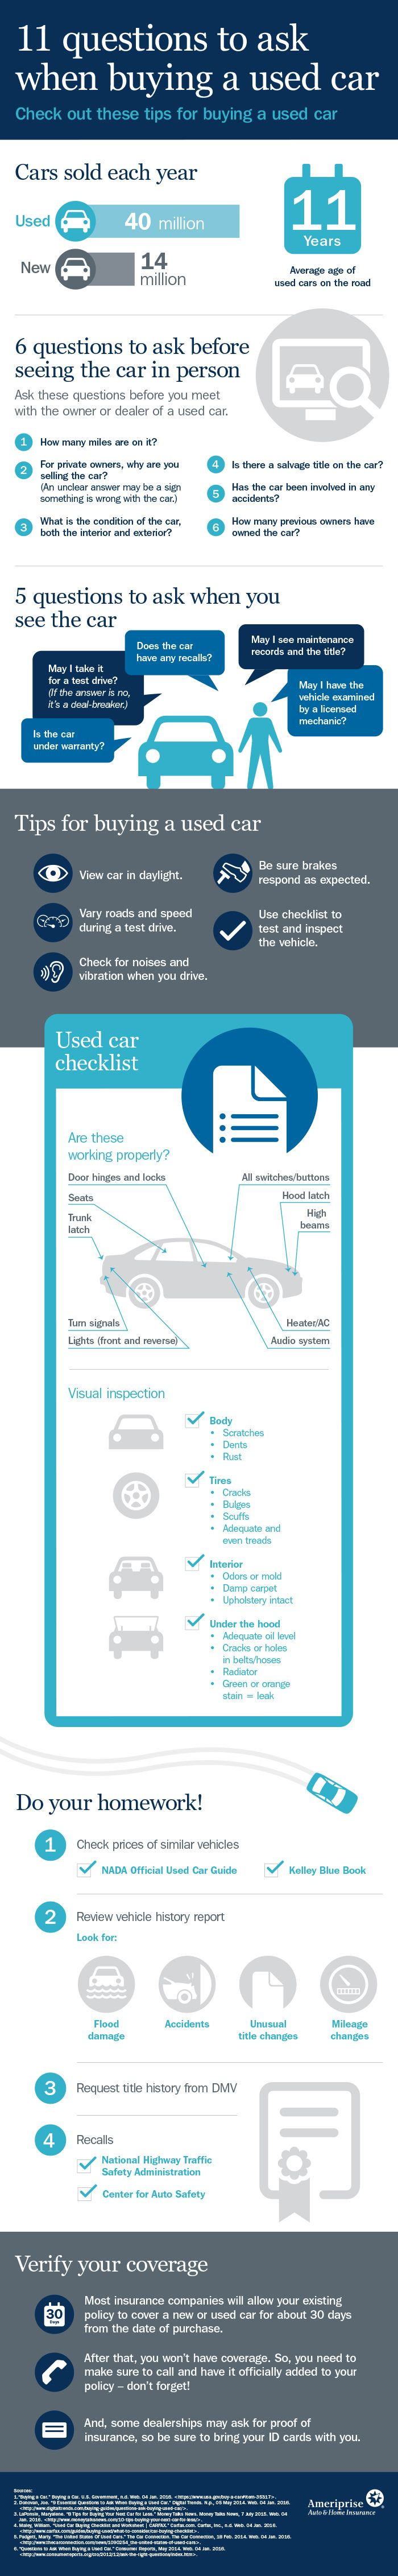 Questions to ask when Buying A Used Car Best Of This Infographic Explains the 11 Questions to ask when Ing A Used